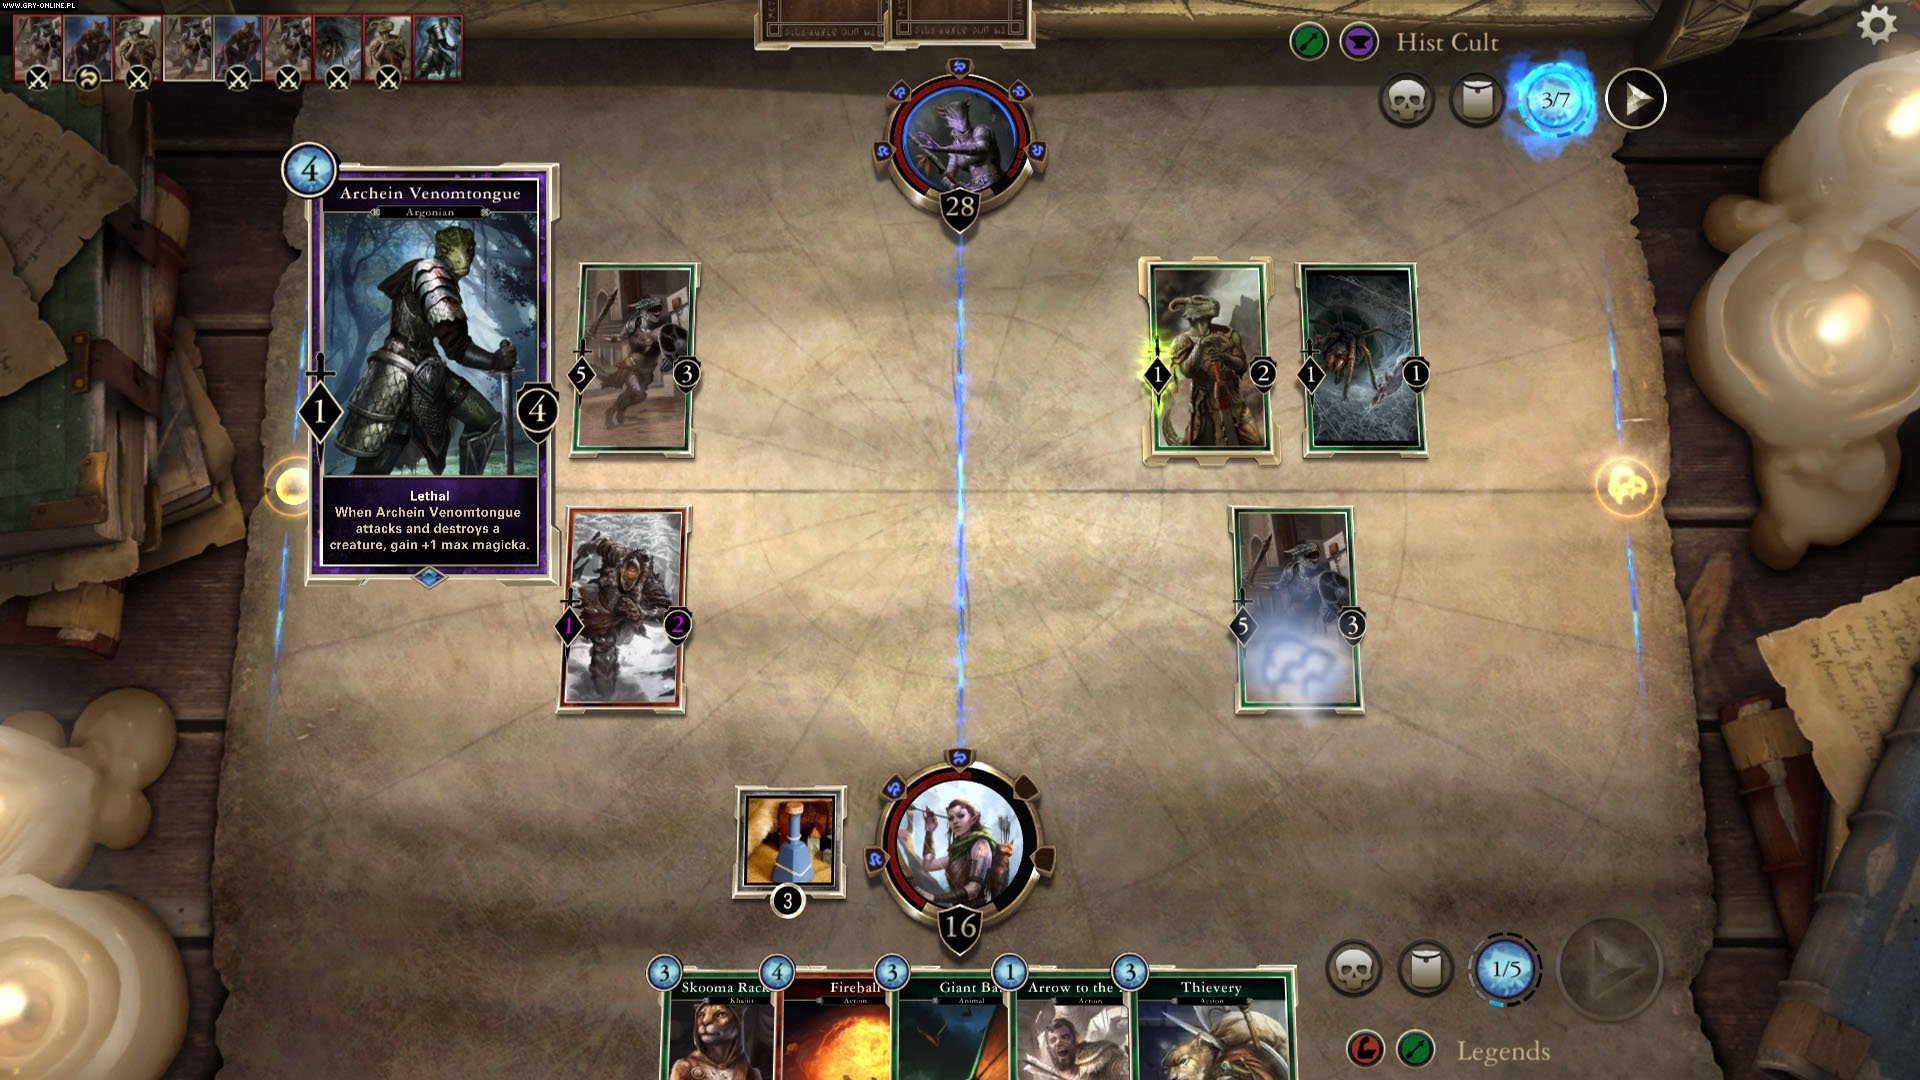 The Elder Scrolls: Legends PC, iOS Games Image 5/6, Bethesda Softworks